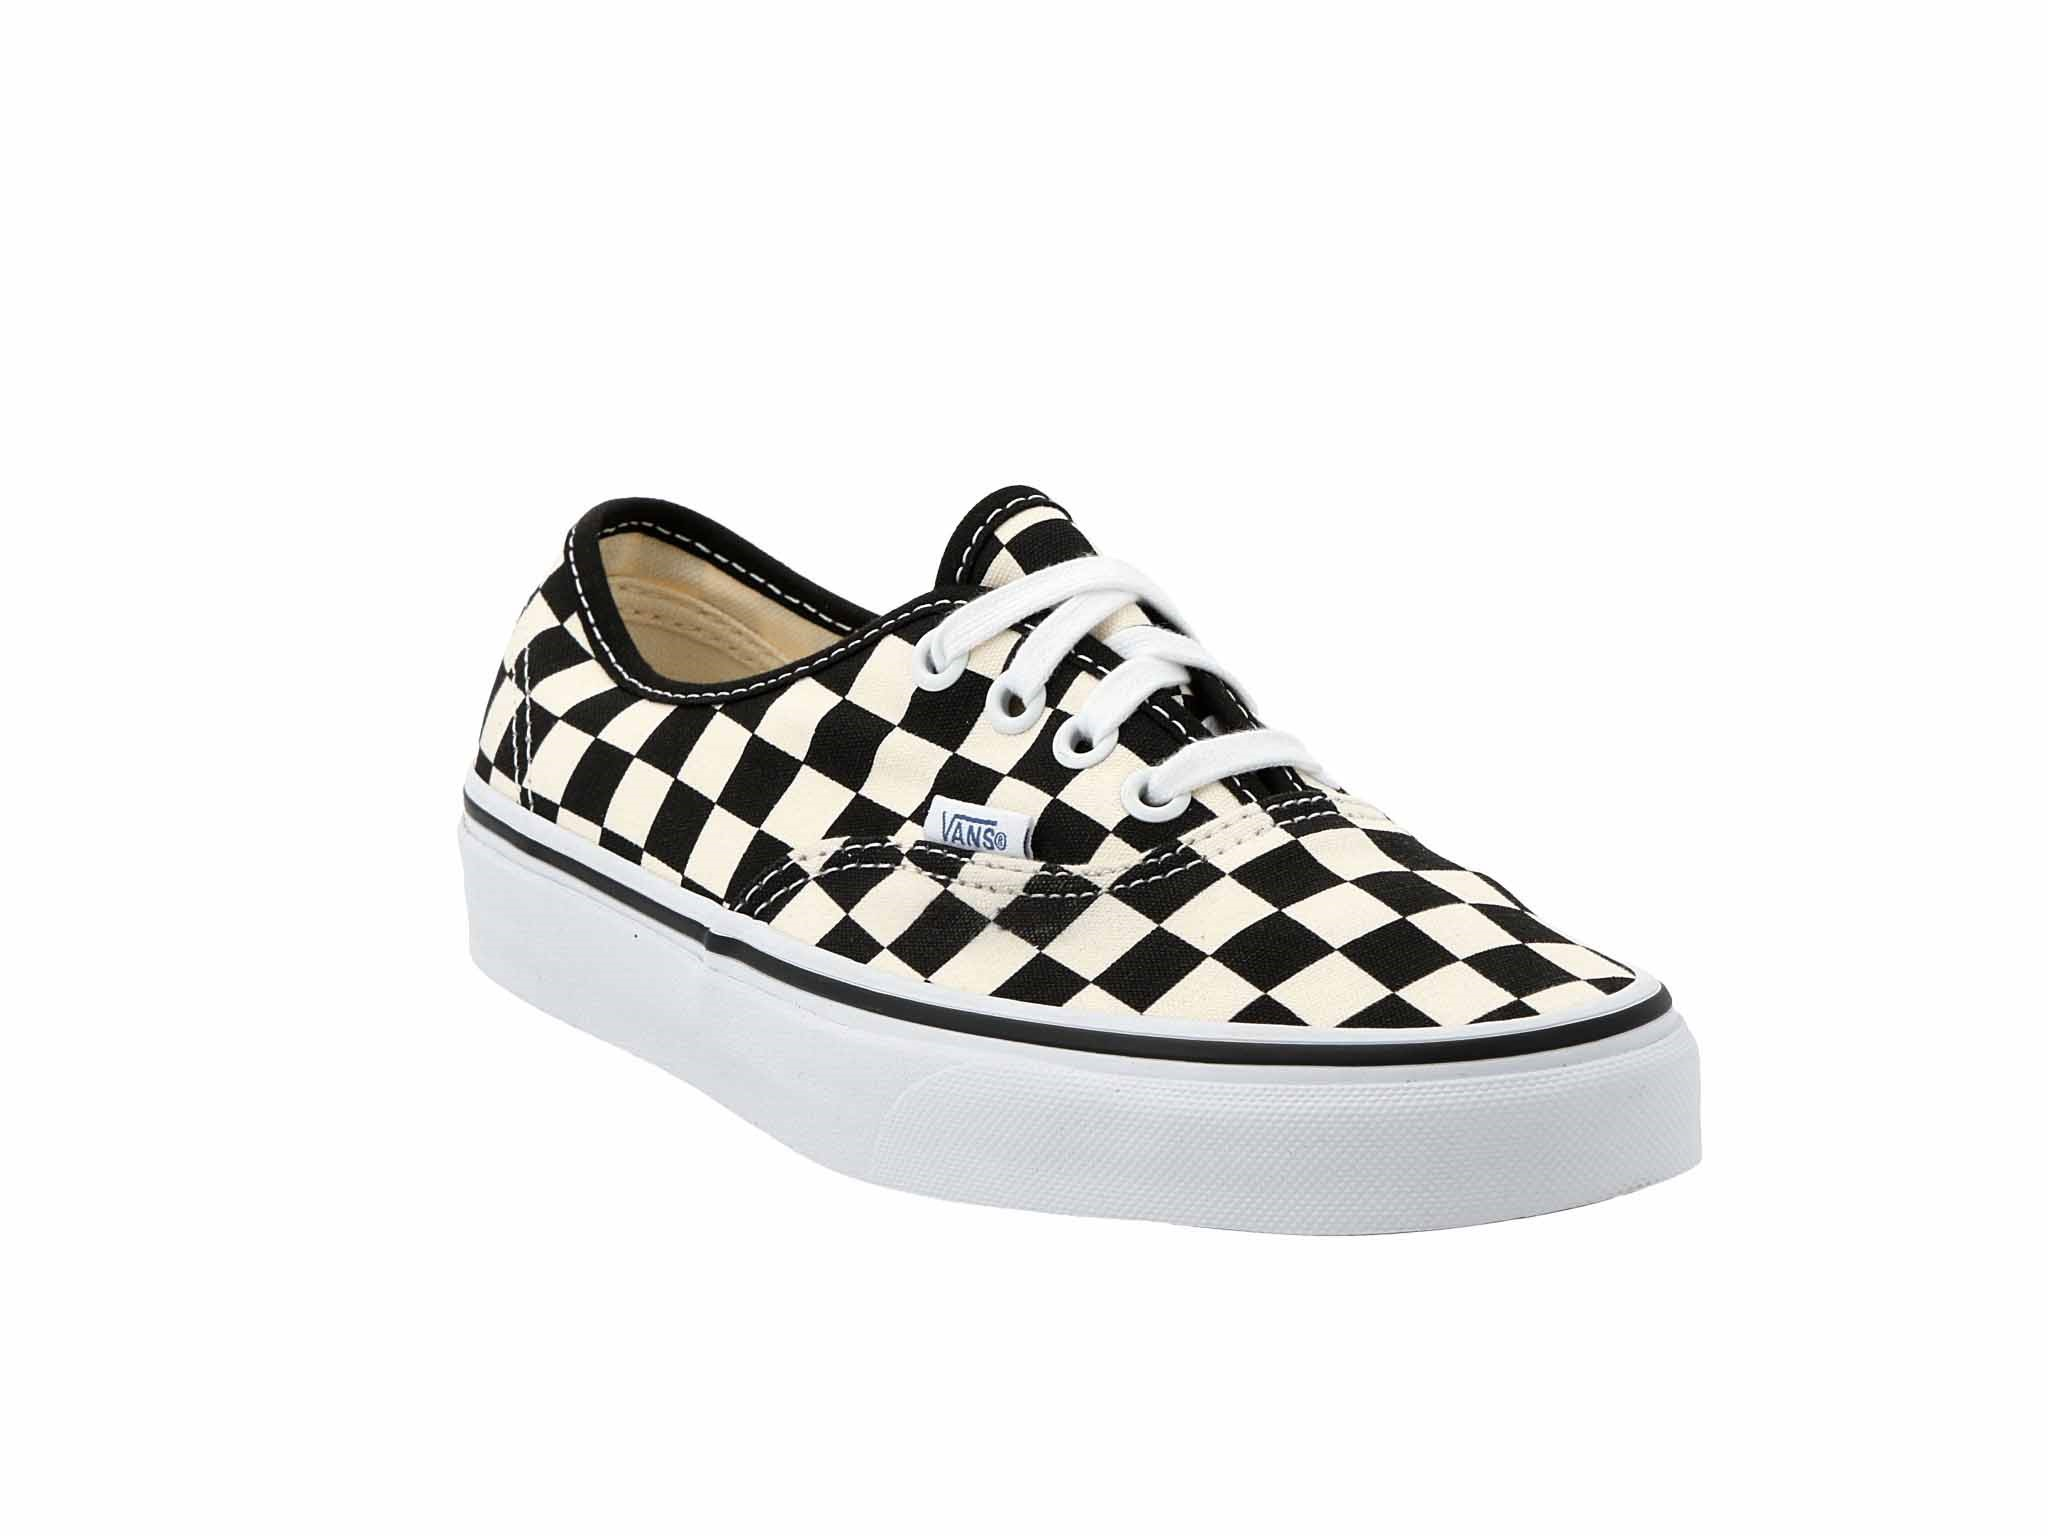 Sneakers buty Vans Authentic Golden Coast black white (VN000W4NDI01)